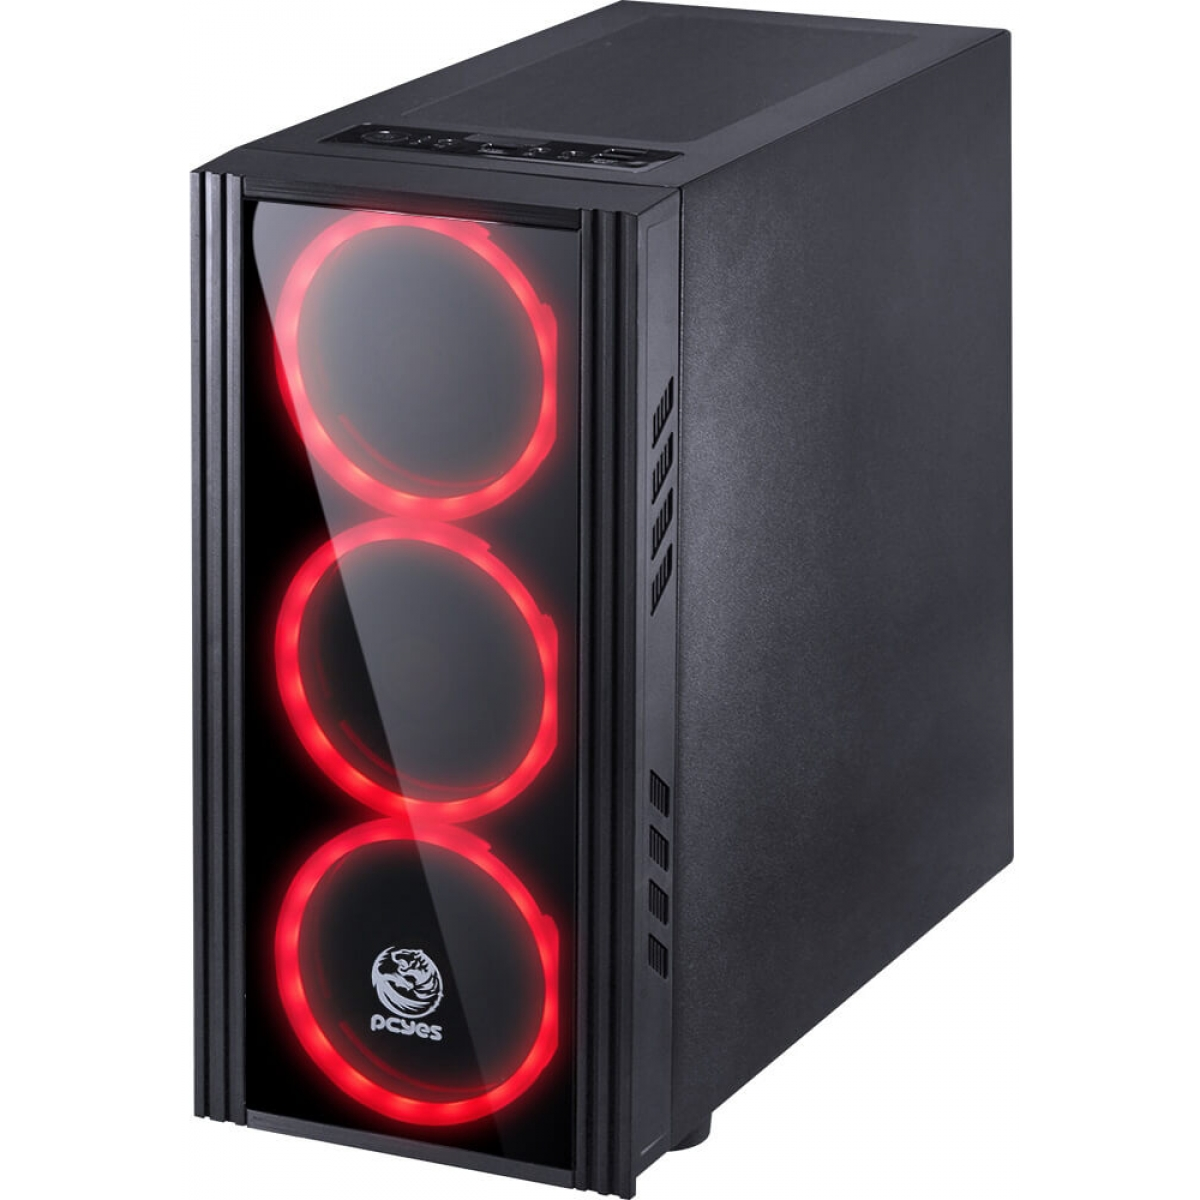 Gabinete Gamer PCyes Saturn Mid Tower Com 3 Fans Red